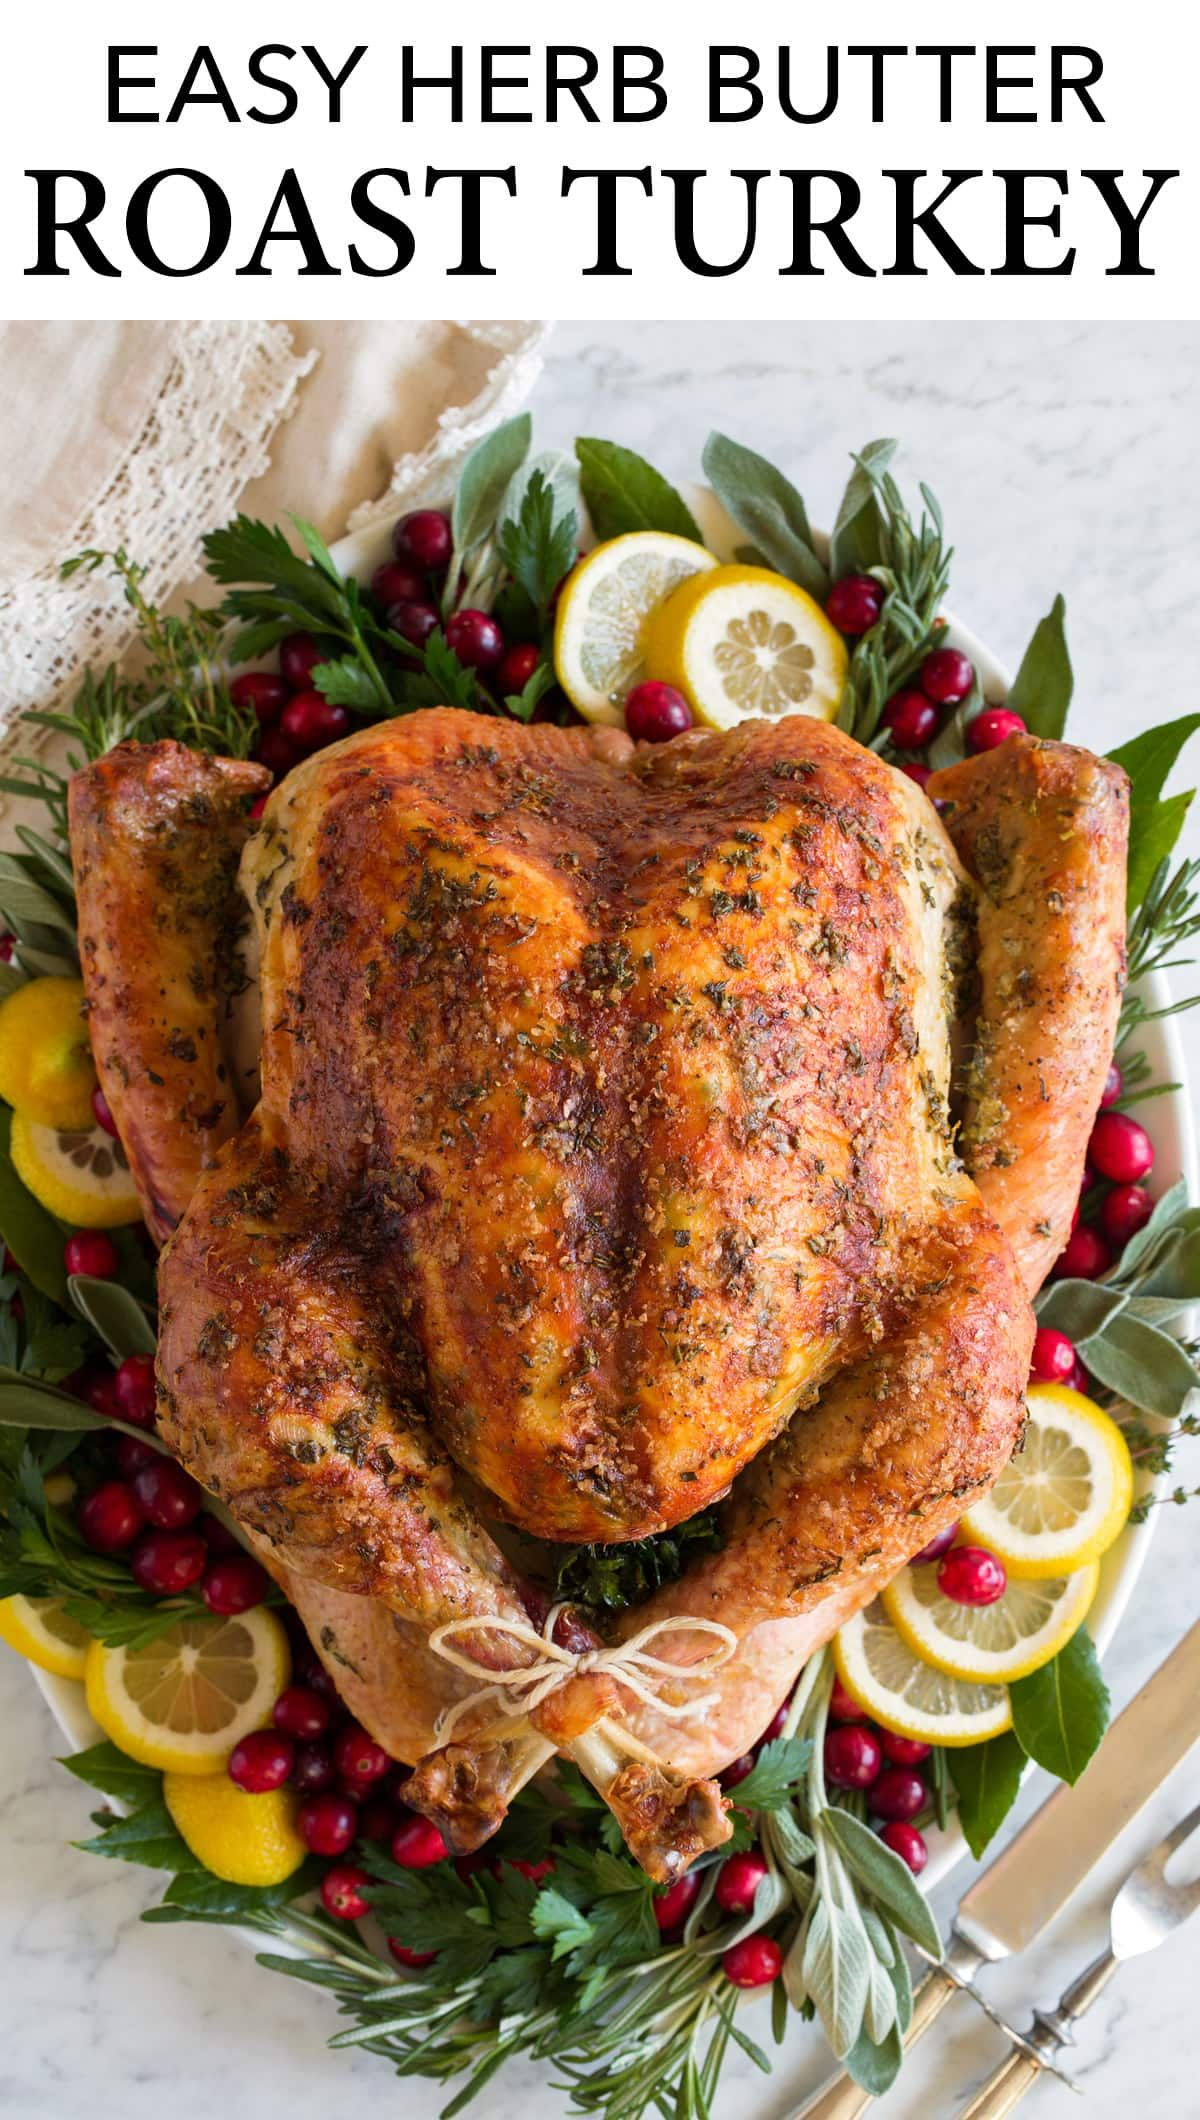 Roast Turkey - so easy, so flavorful, so tender and juicy! Made with a fresh or frozen and thawed turkey, lots of rich butter, flavorful fresh herbs, and bright lemon, onion and garlic. It's easy to prepare and it's sure to impress family and friends! #thanksgiving #turkey #recipe #turkeyrecipes